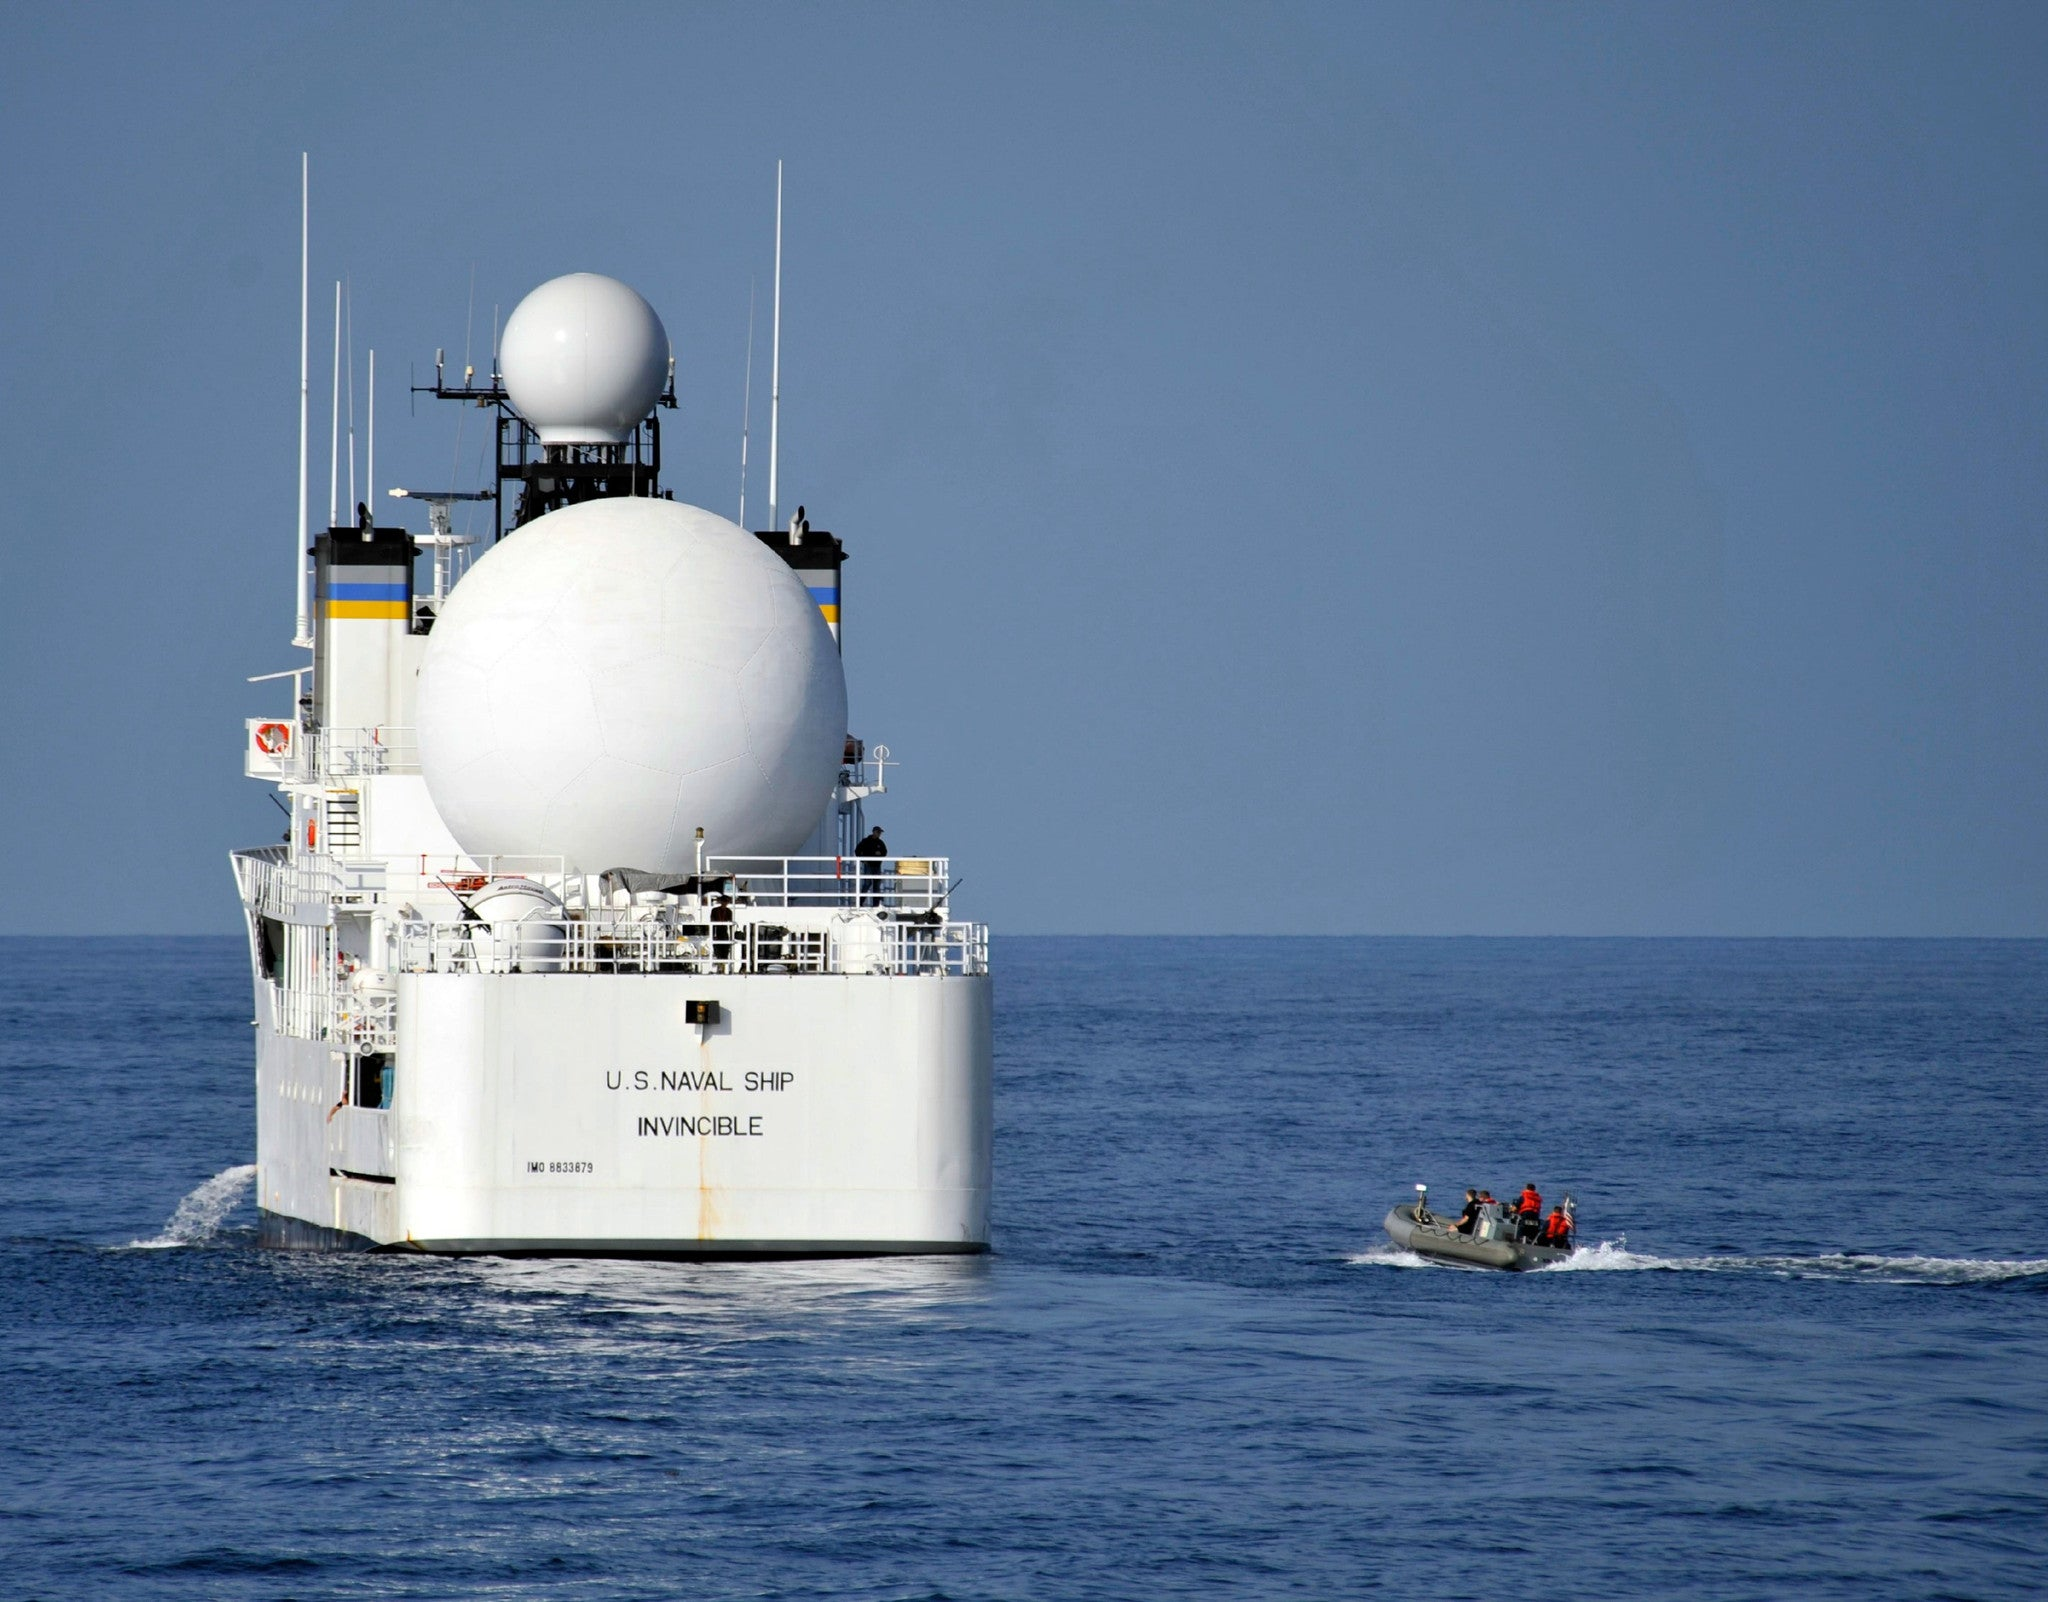 "Military Sealift Command Missile Range Instrumentation Ship USNS Invincible (2012) - 8 x 10"" Photograph"